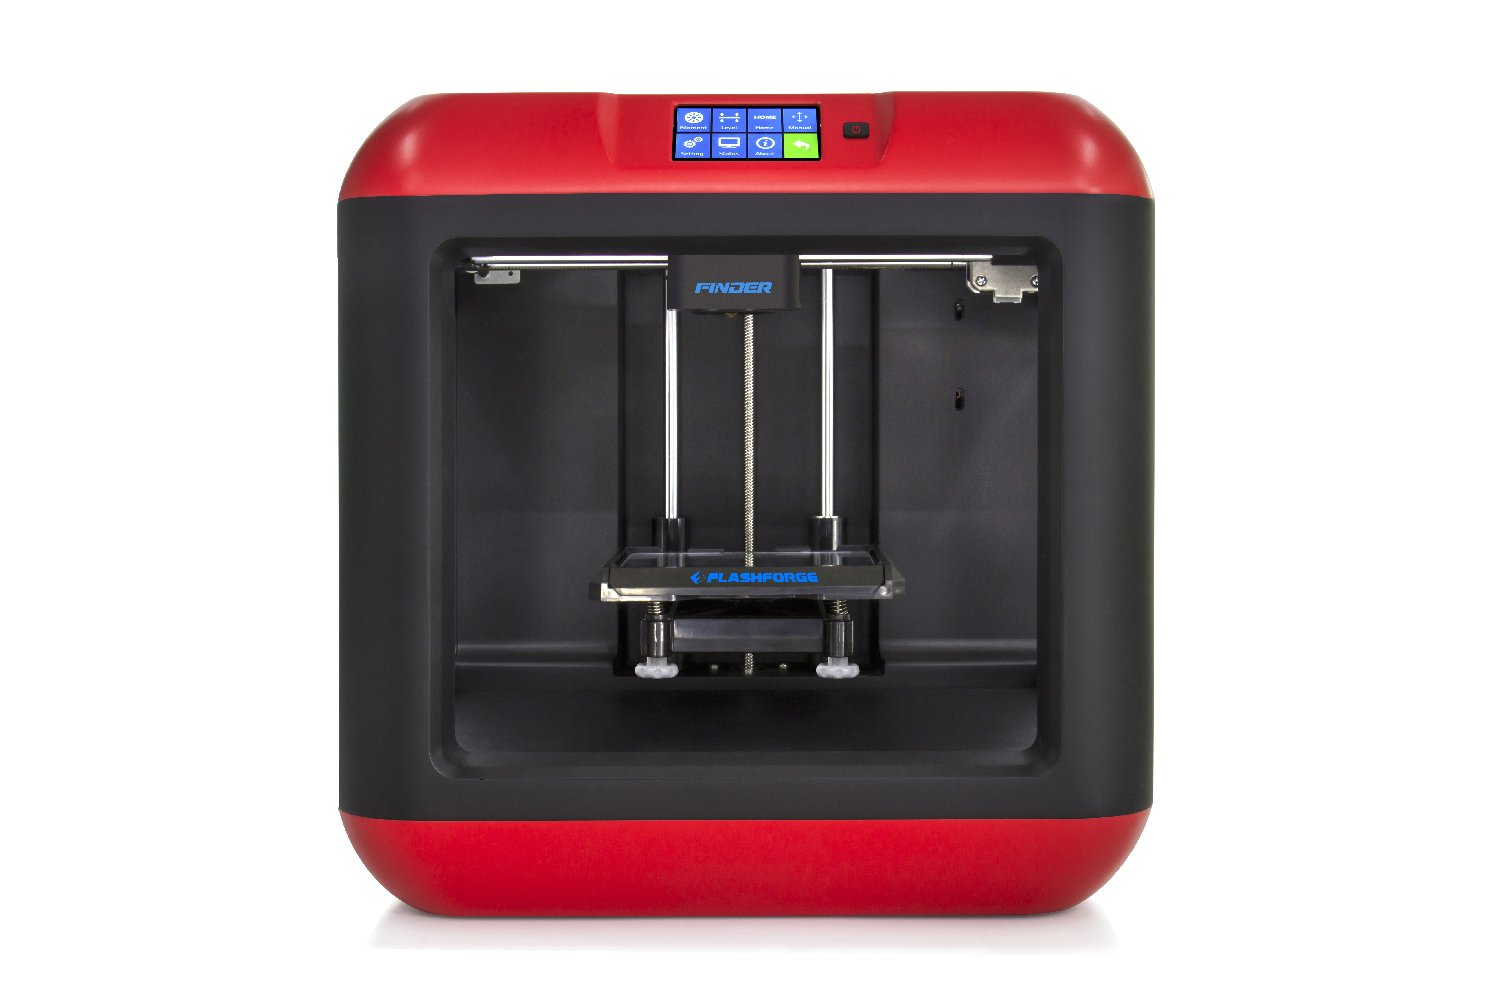 FlashForge Finder 3D Printers with Cloud, Wi-Fi, USB cable and Flash drive connectivity by FlashForge